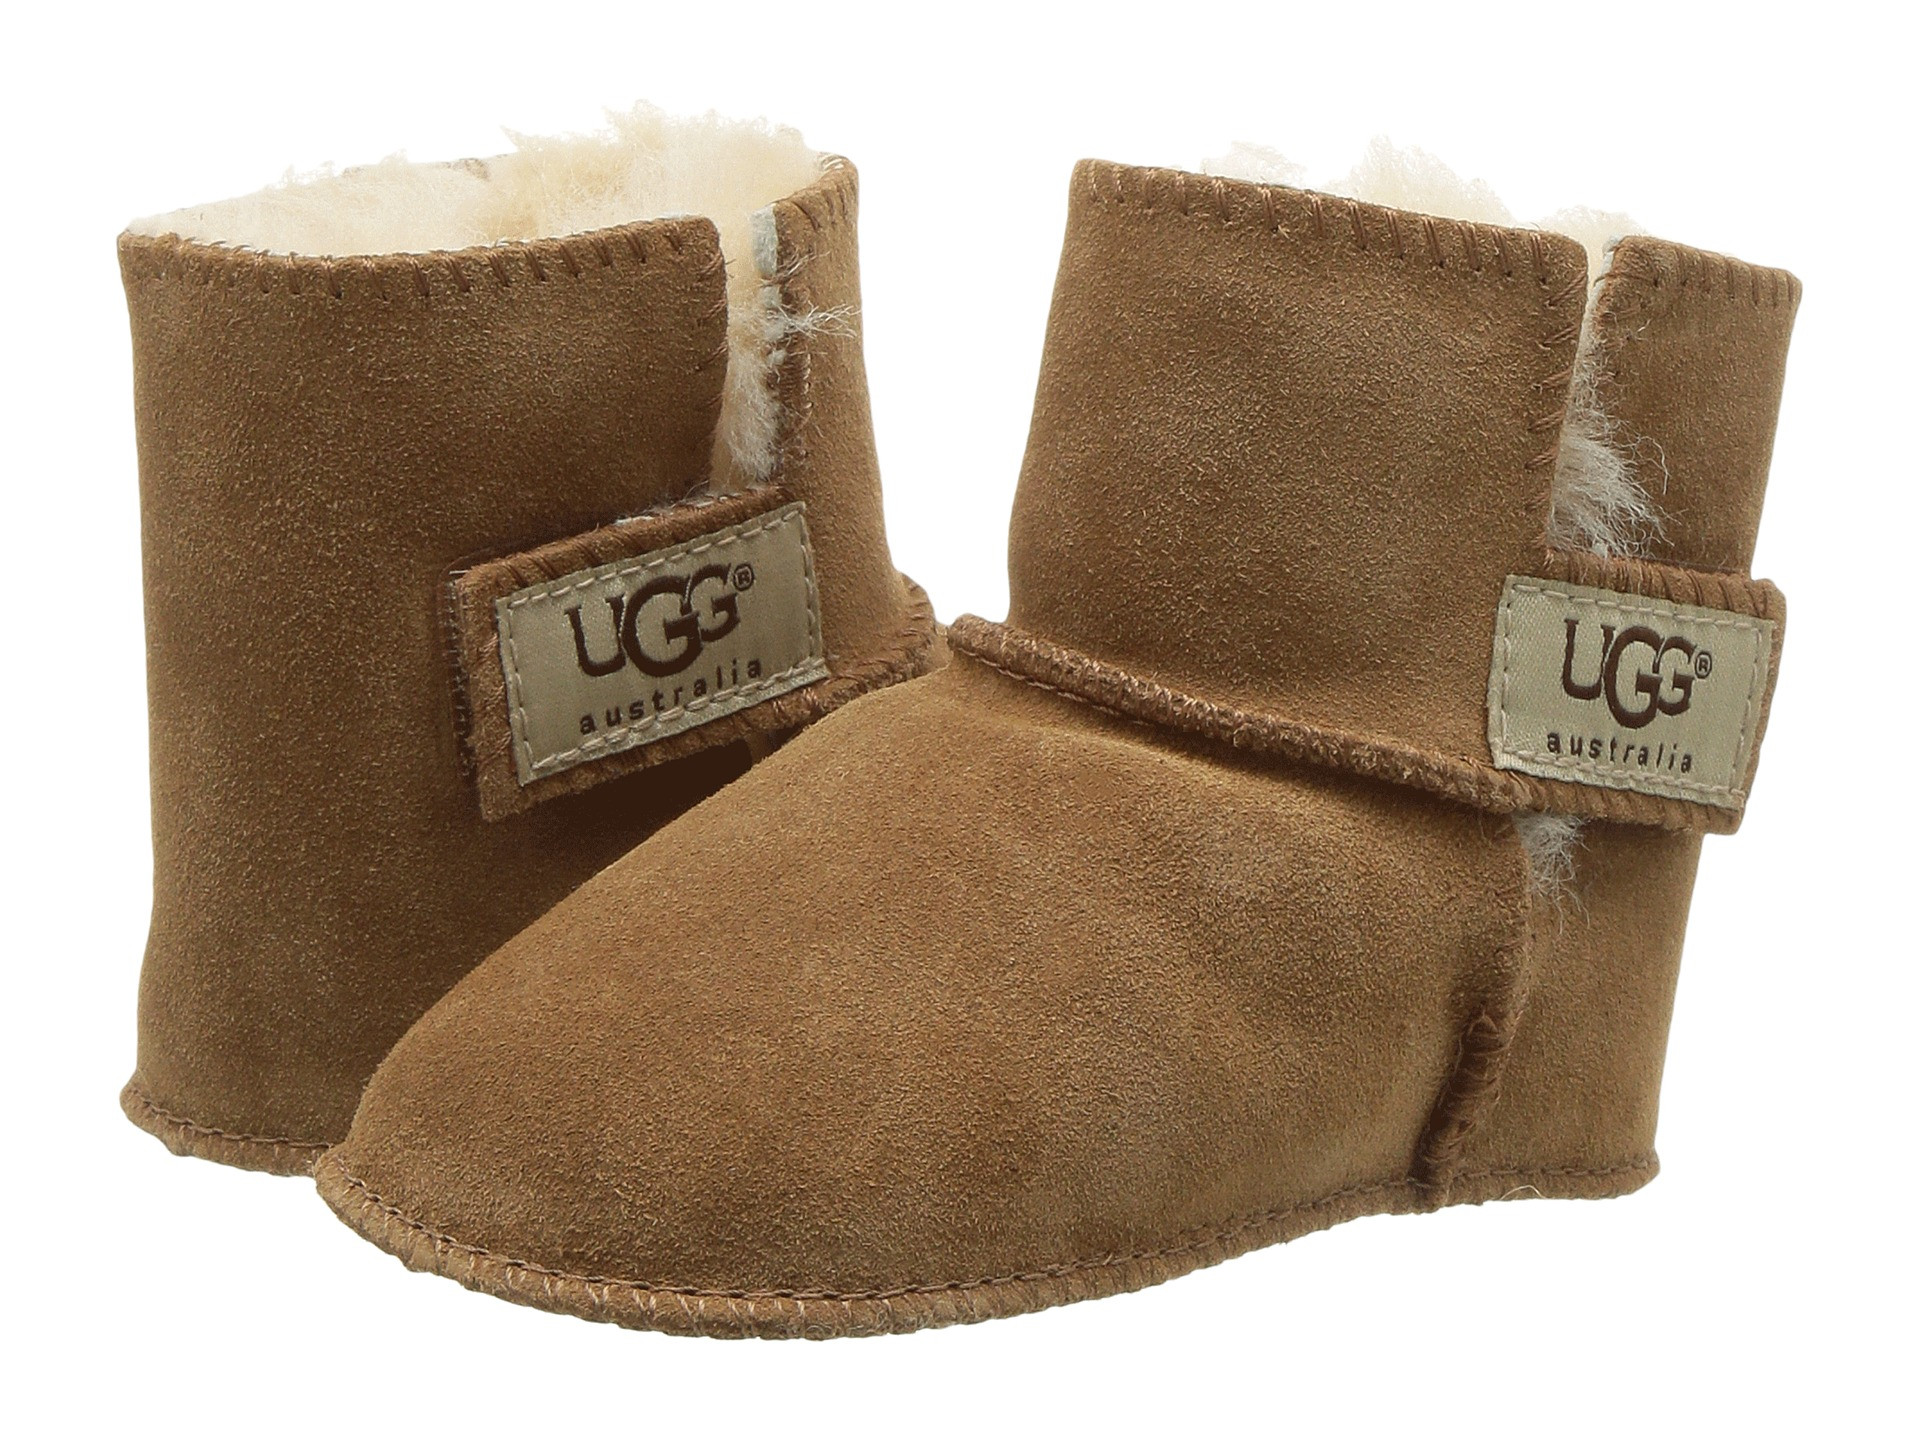 3cb079ed547 Details about UGG ERIN CHESTNUT BROWN INFANT'S BOOTIES SHOES 5202